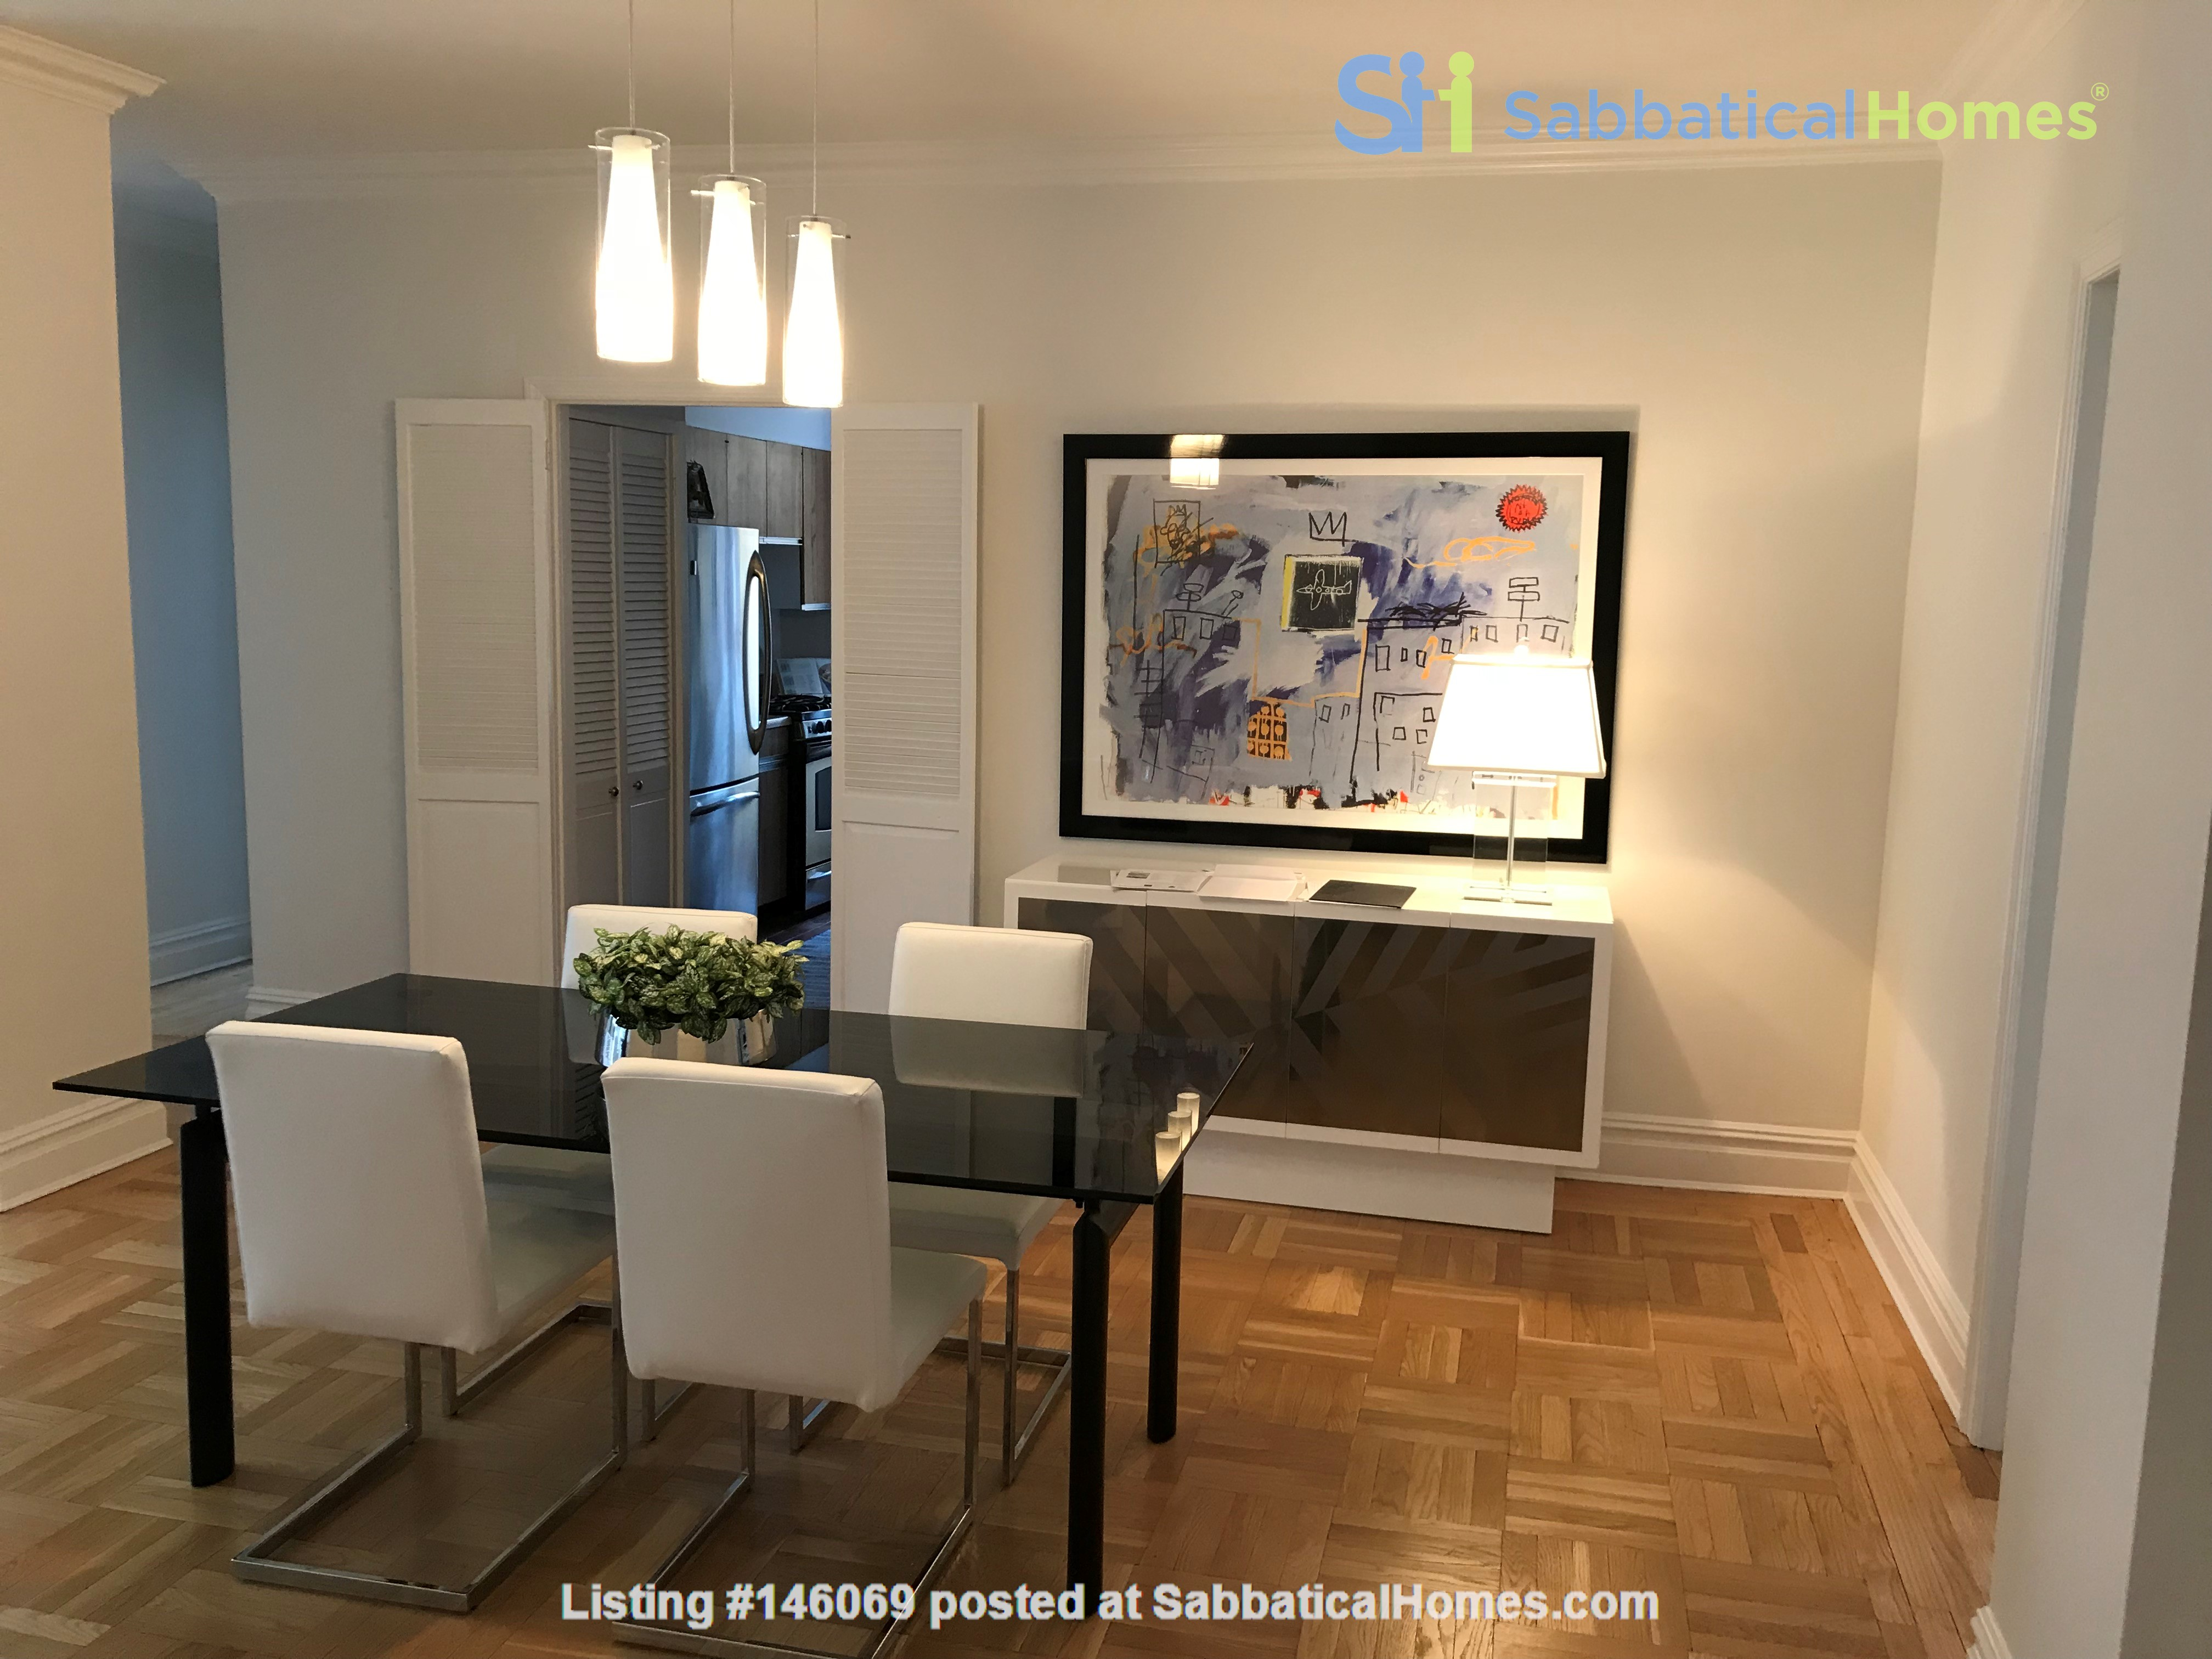 Large, sun-filled 2 bedroom 2 full-bath across from Columbia University Home Rental in New York 3